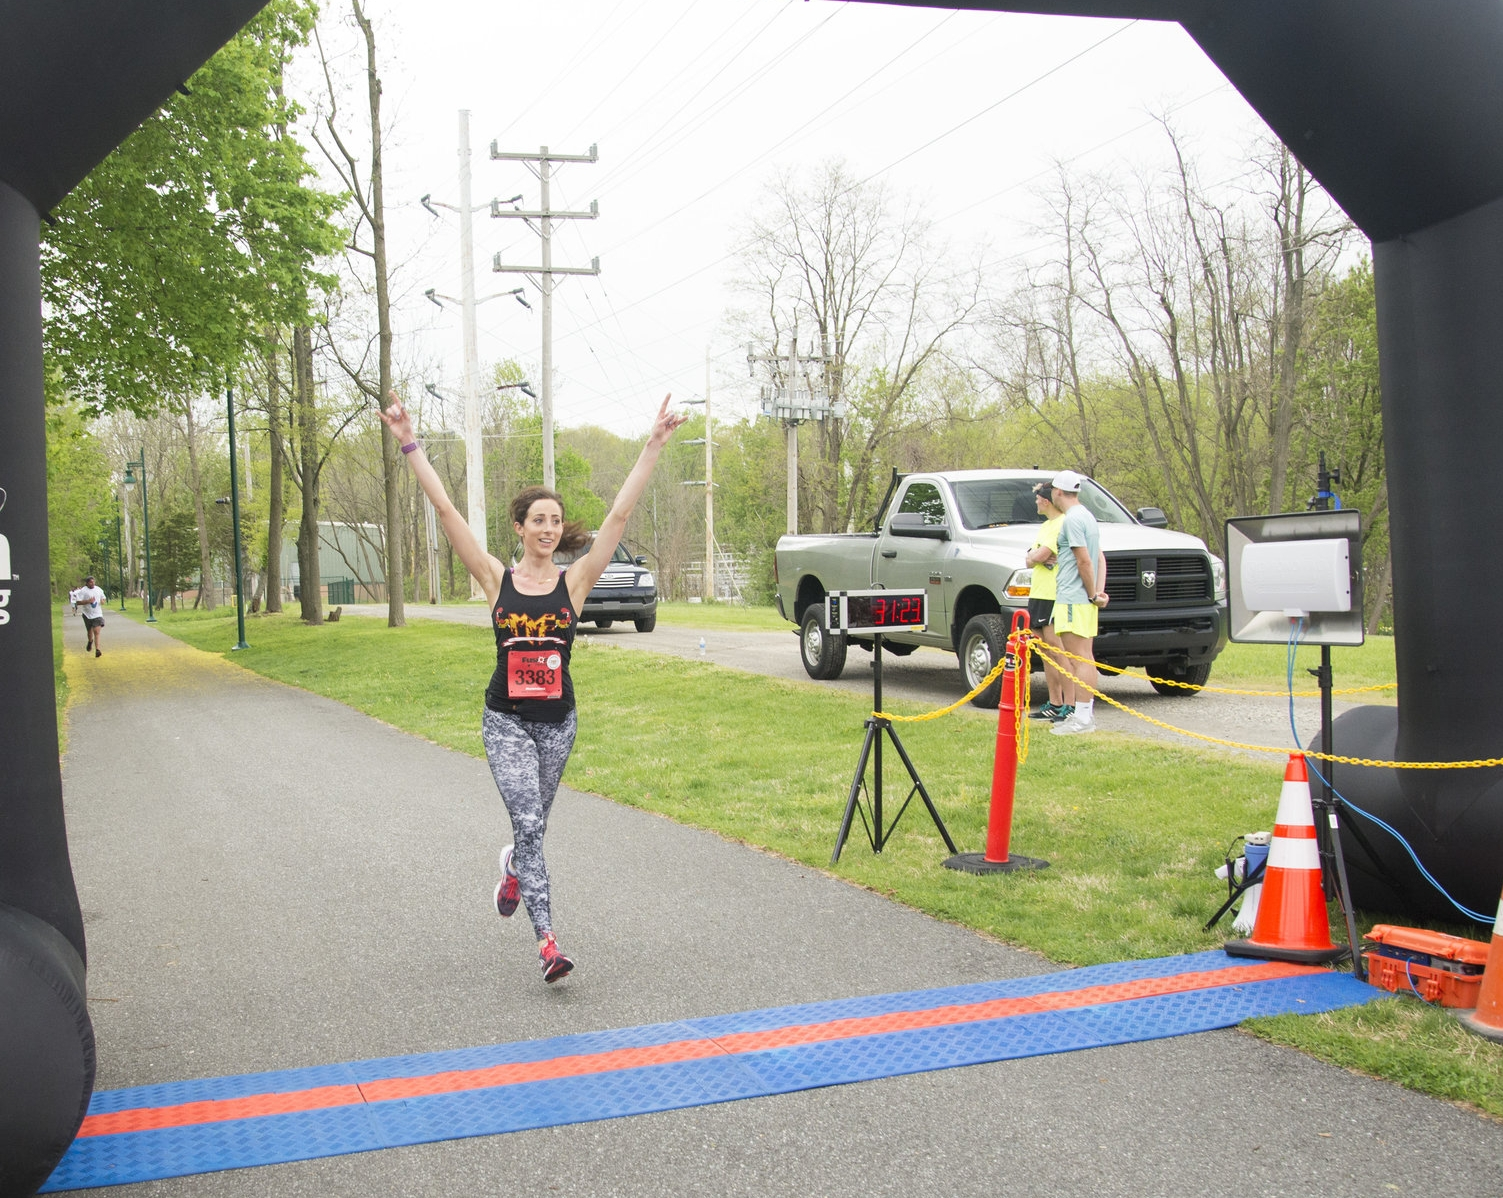 NFL Cheerleader, U.S. Navy Nurse, MMF National Ambassador, and MUSCLE CHAMPION, Rachel Engler, crossing the finish line at the very first Muscle Movement Fdn. RUN for STRENGTH 5k in Newark, DE! Rachel received treatment for myasthenia gravis, an autoimmune form of muscle disease, just one week before completing this race!